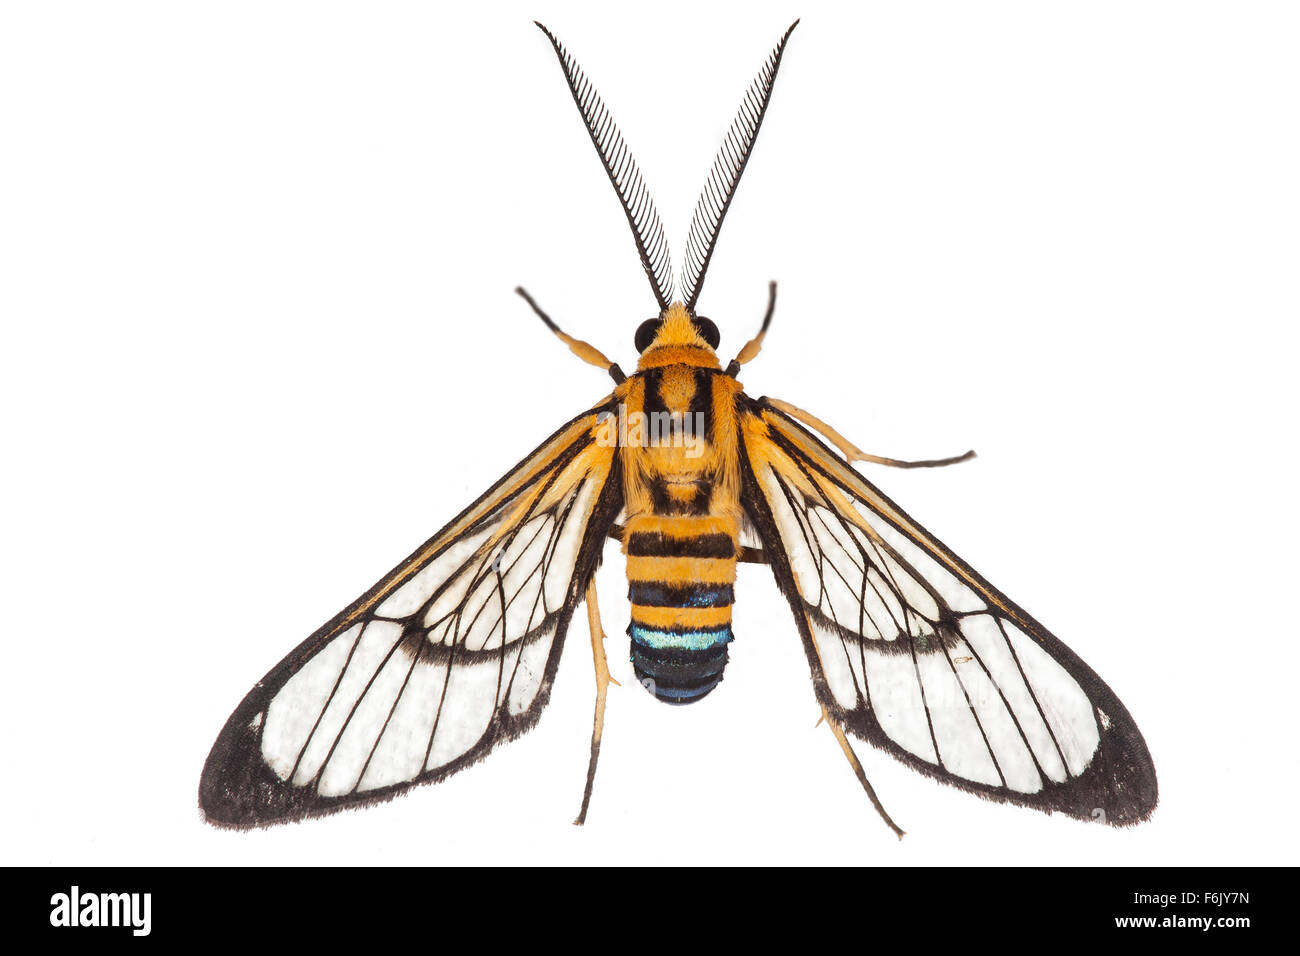 This moth is a wasp mimic - a classic example of Batesian mimicry.  Photographed on a white background. - Stock Image